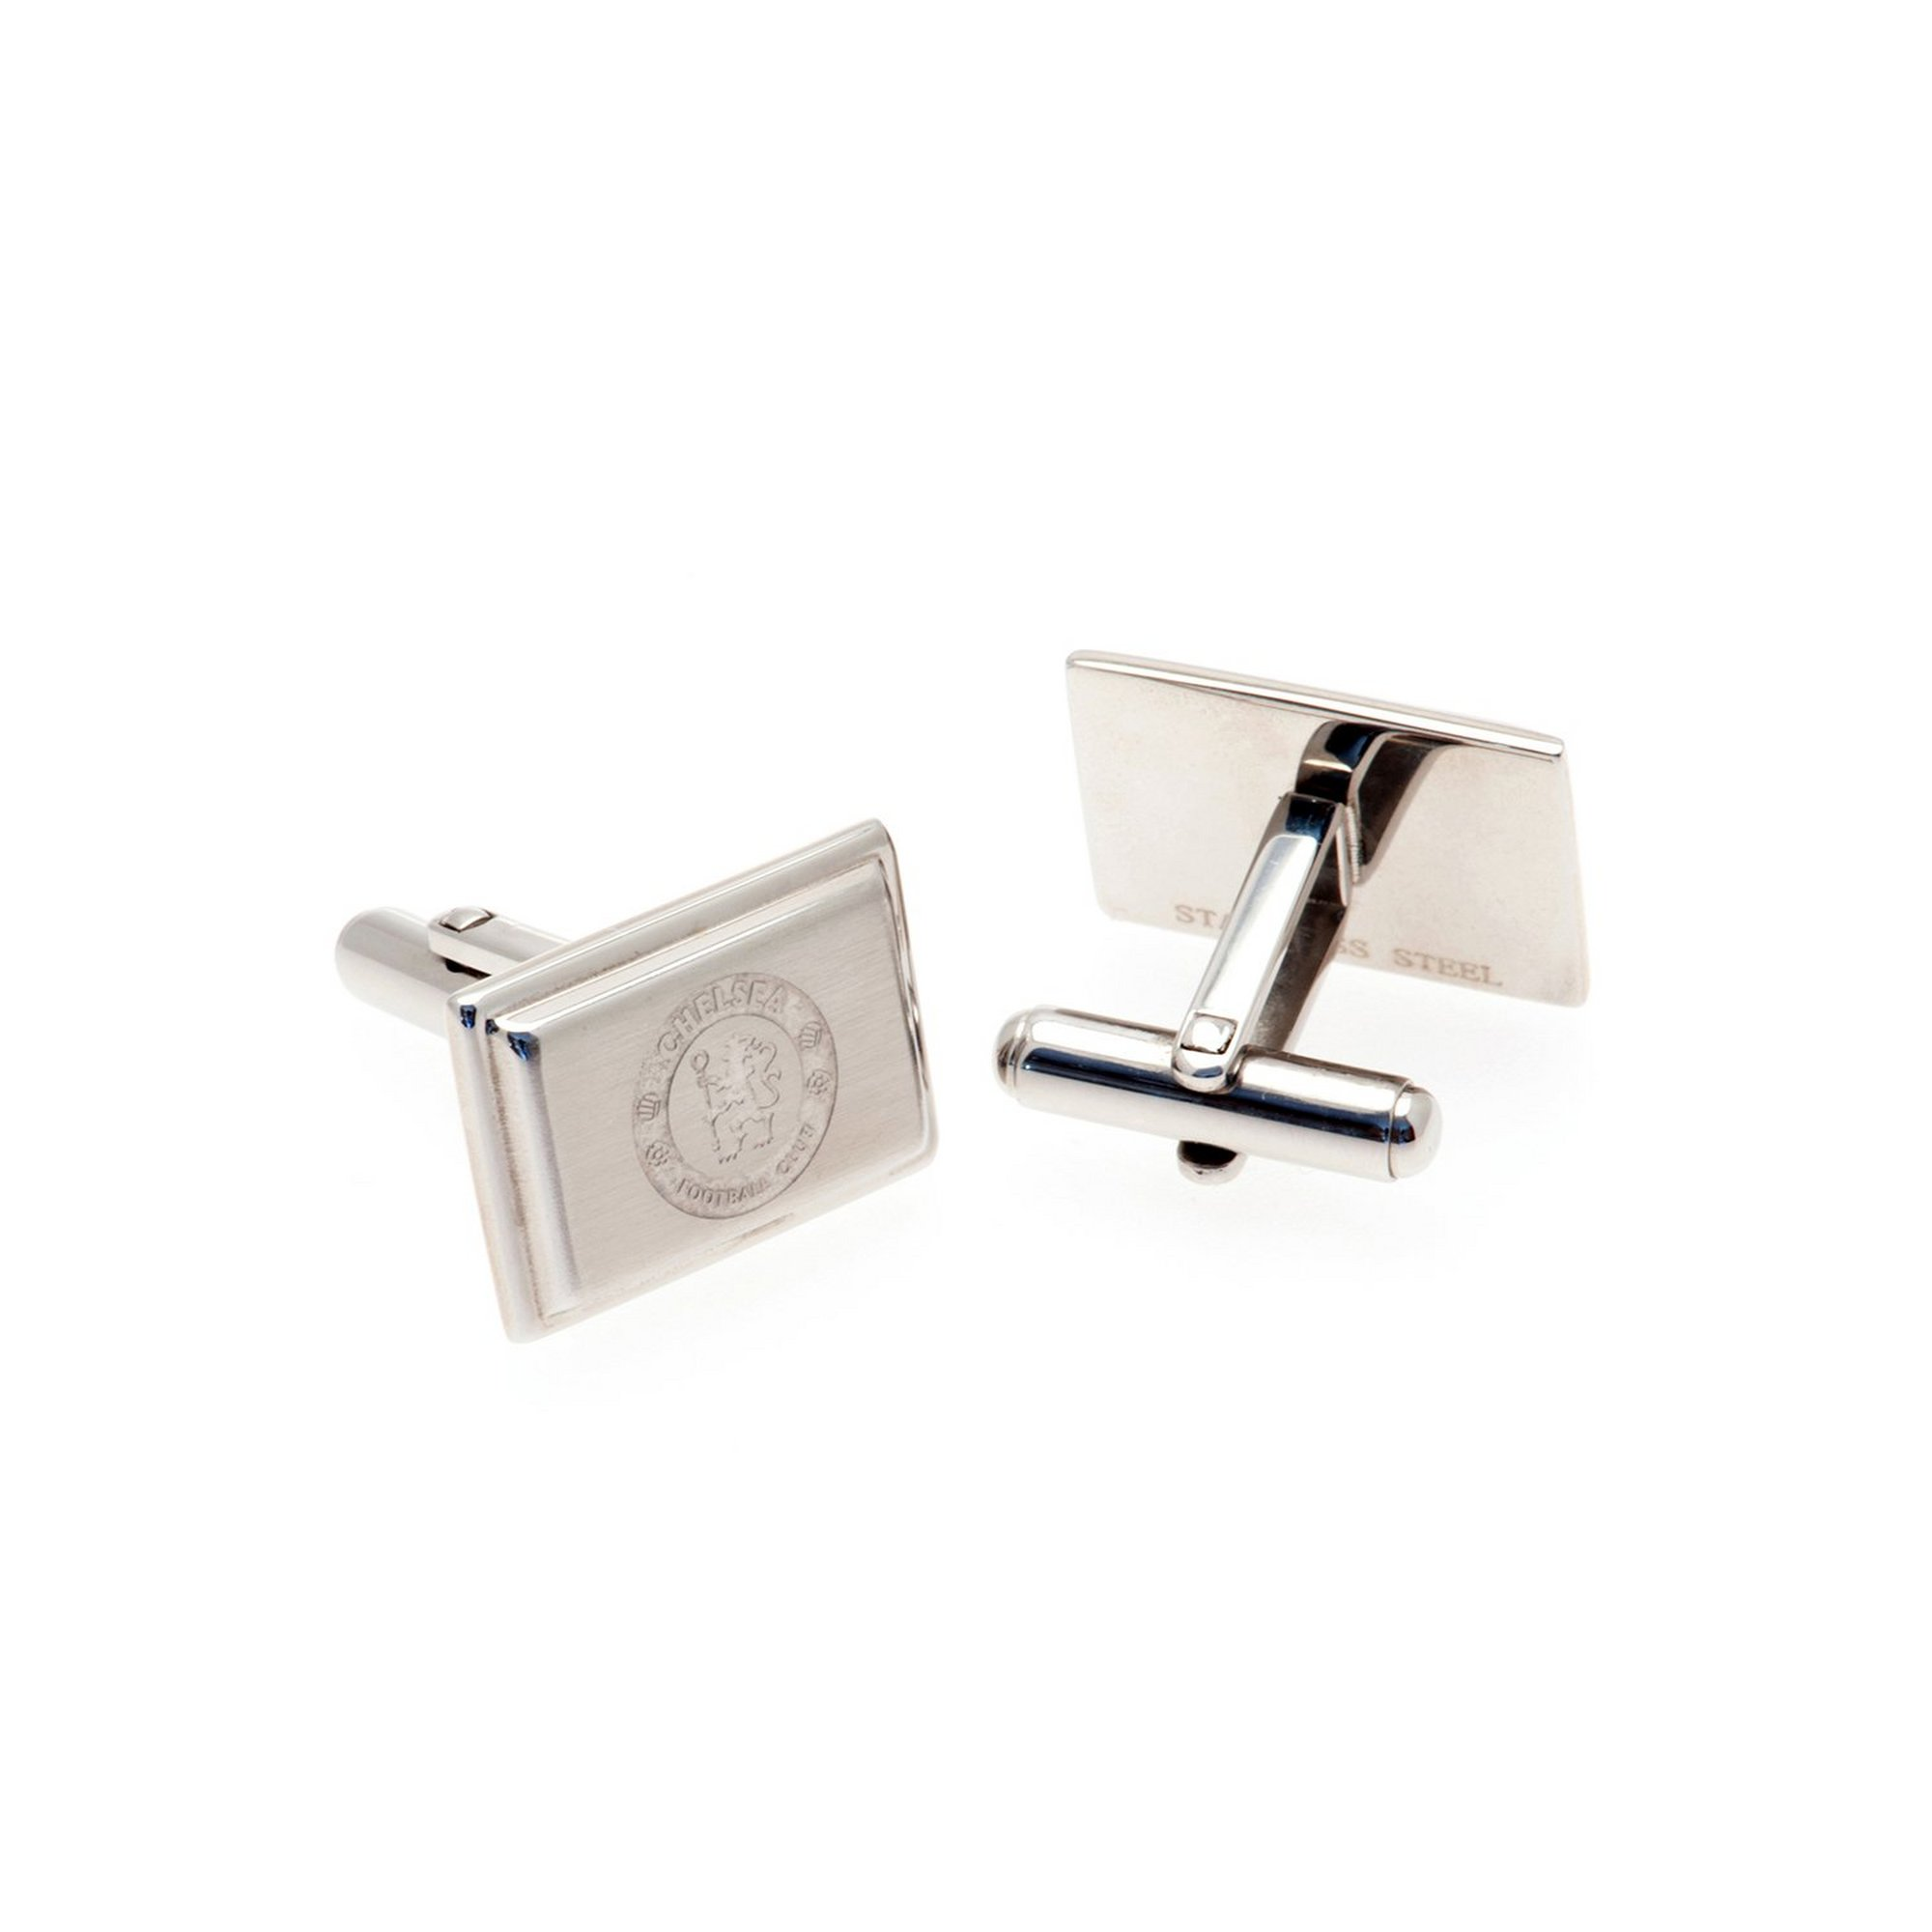 Image of Chelsea FC Stainless Steel Crest Cufflinks